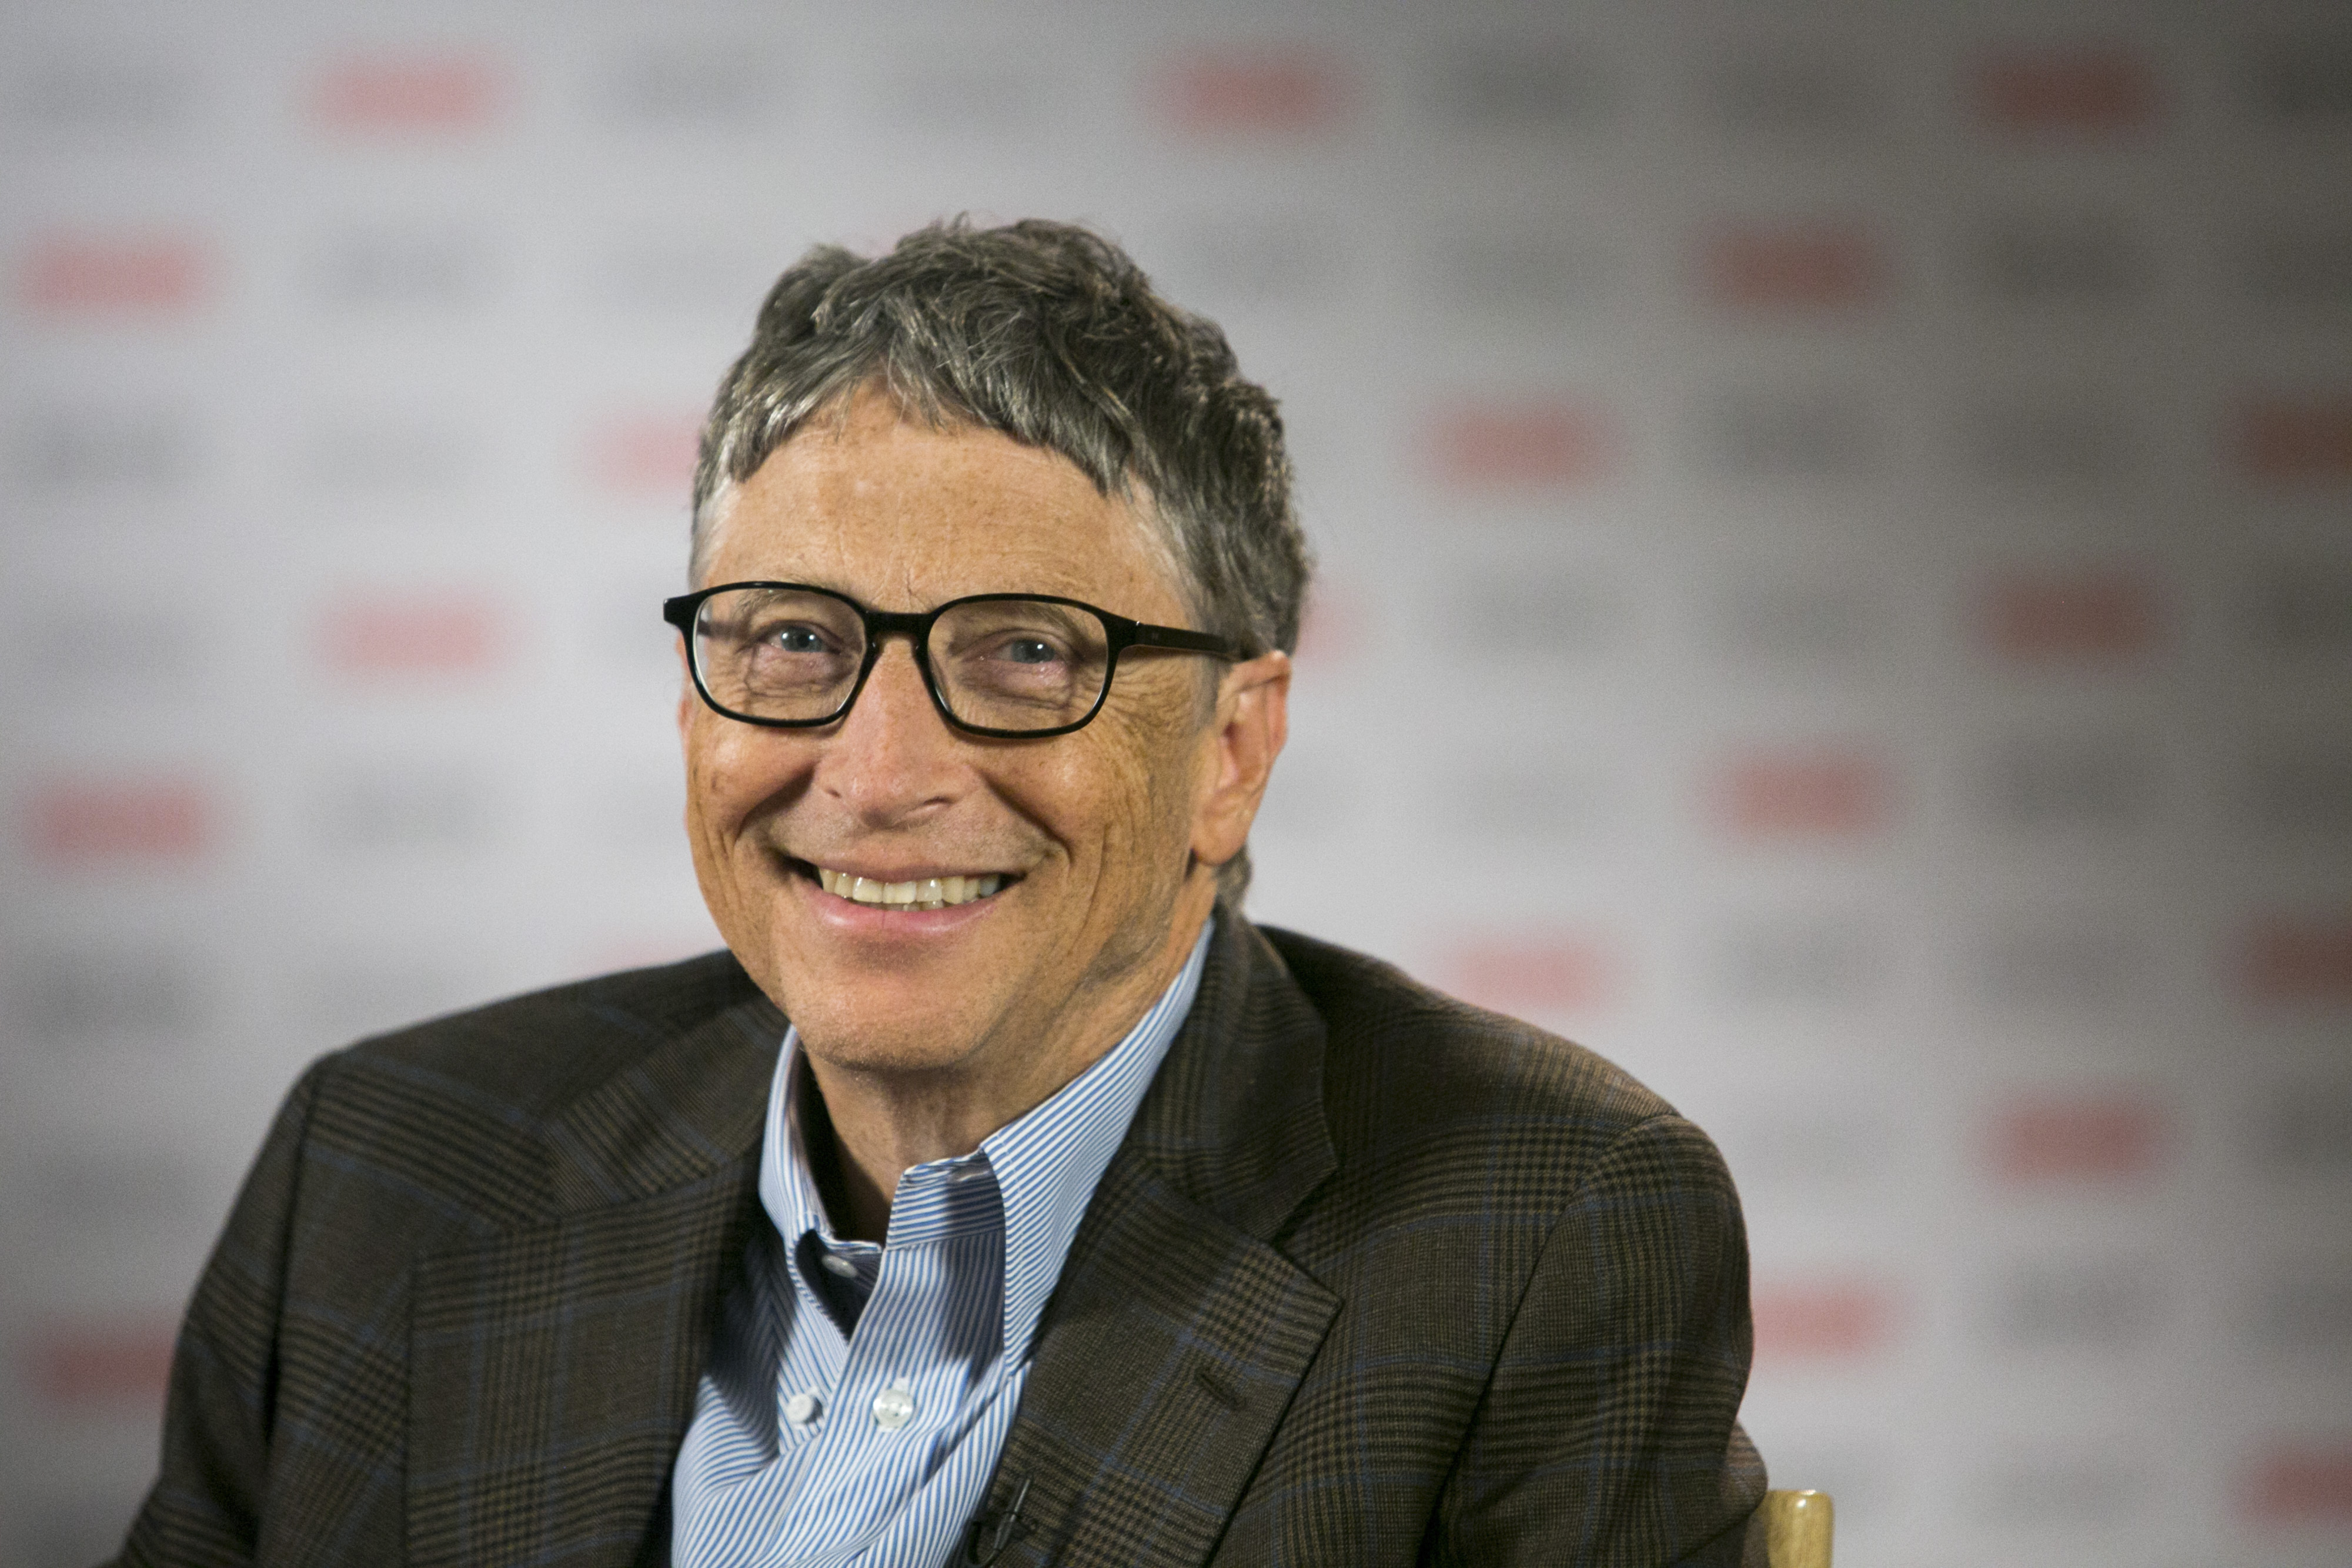 Billionaire Bill Gates, co-founder of Microsoft and co-chair of the Bill and Melinda Gates Foundation, smiles before an interview with Bloomberg Television at the Sibos financial services conference in Boston, Mass. on Oct. 2, 2014.